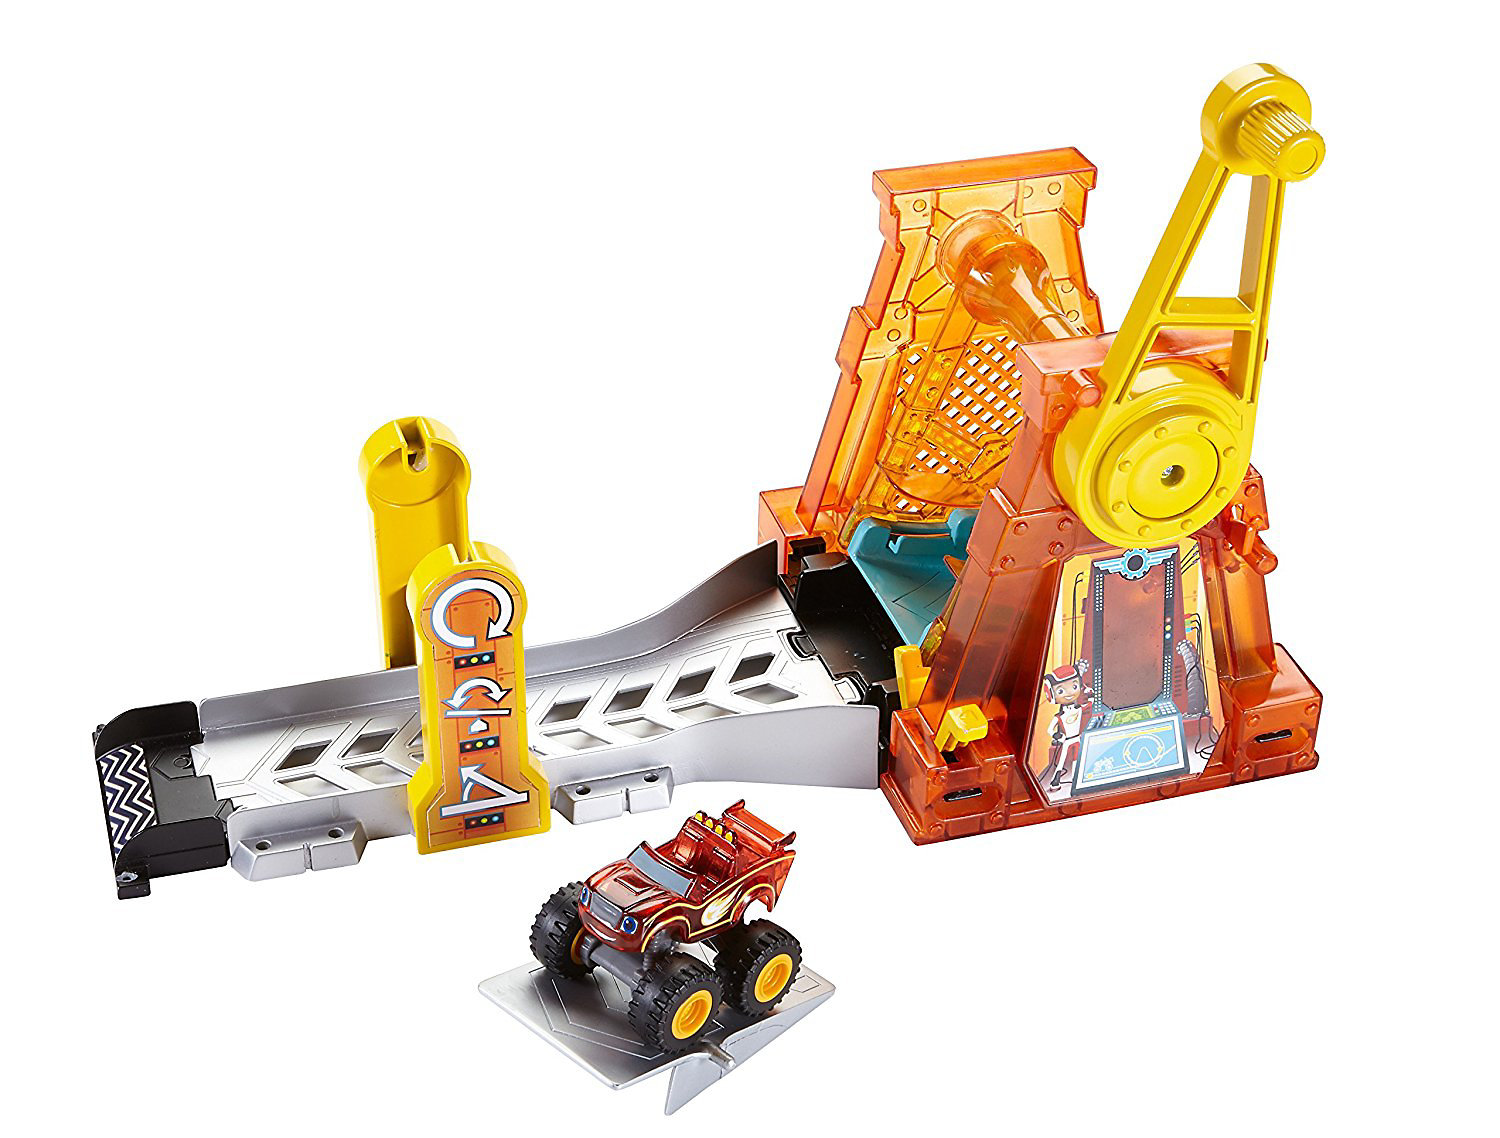 Fisher Price Nickelodeon Blaze & the Monster Machines Light & Launch Hyper Loop Playset by Mattel